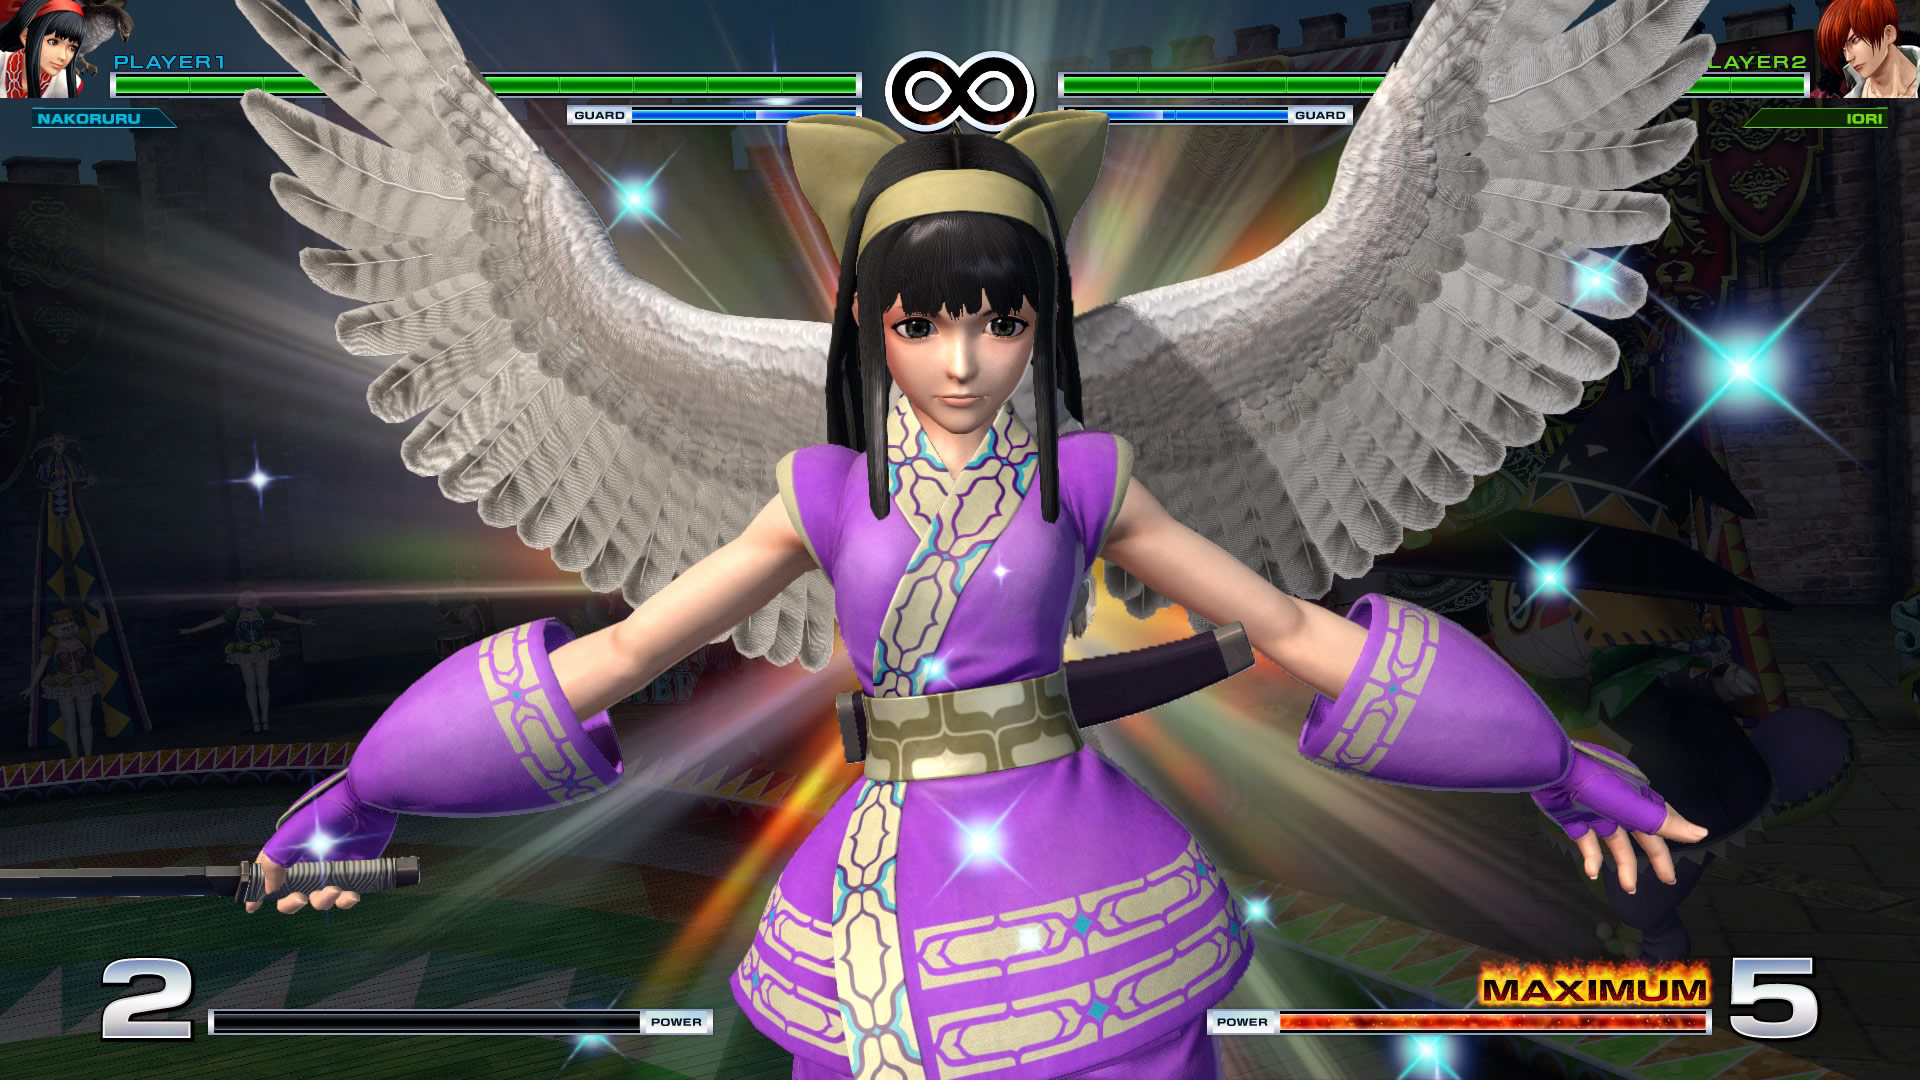 King of Fighters 14 1.10 graphics update 16 out of 60 image gallery